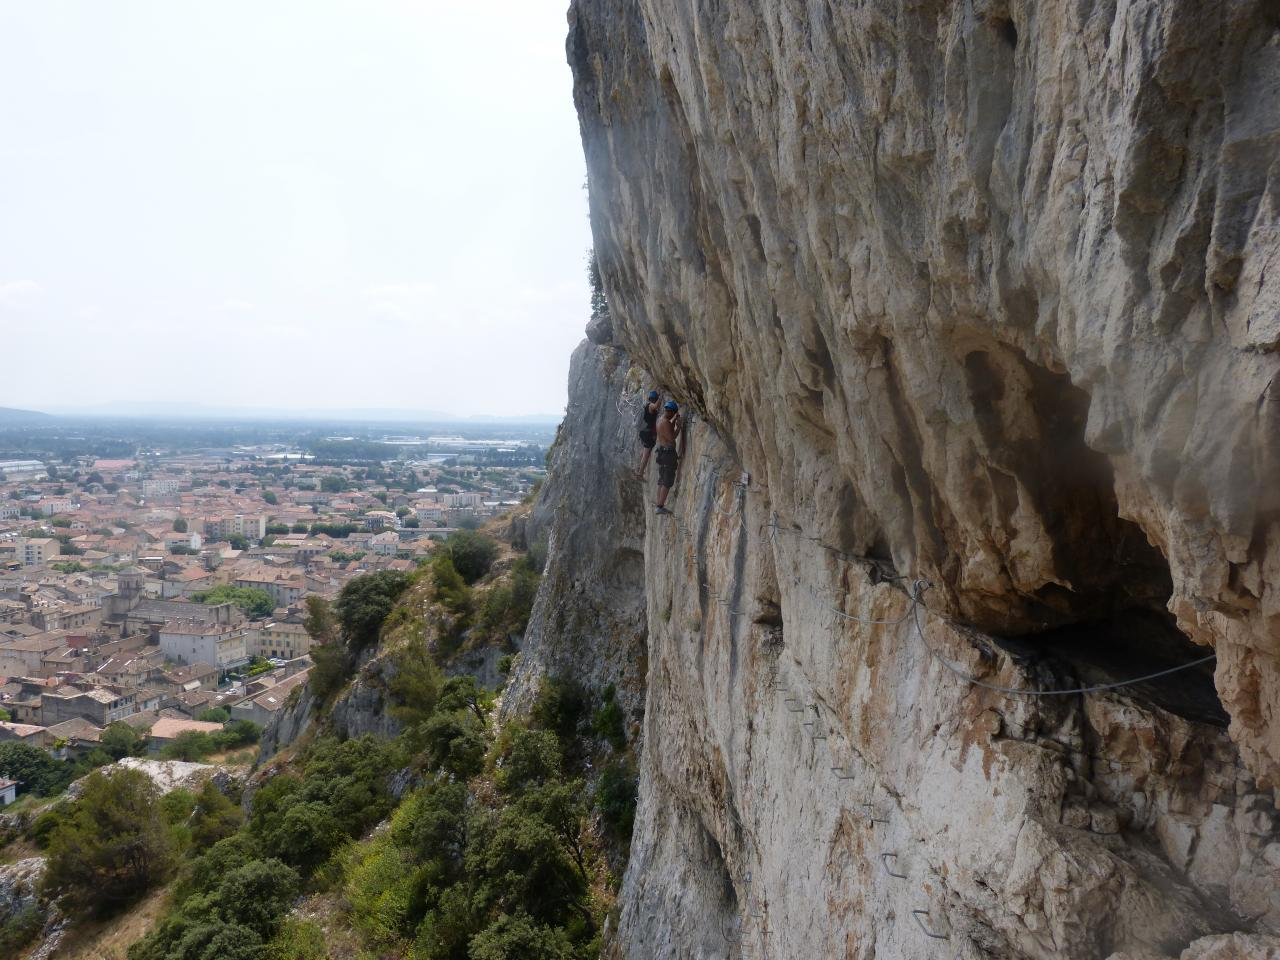 Via ferrata de la colline St Jacques Cavaillon (Vaucluse)